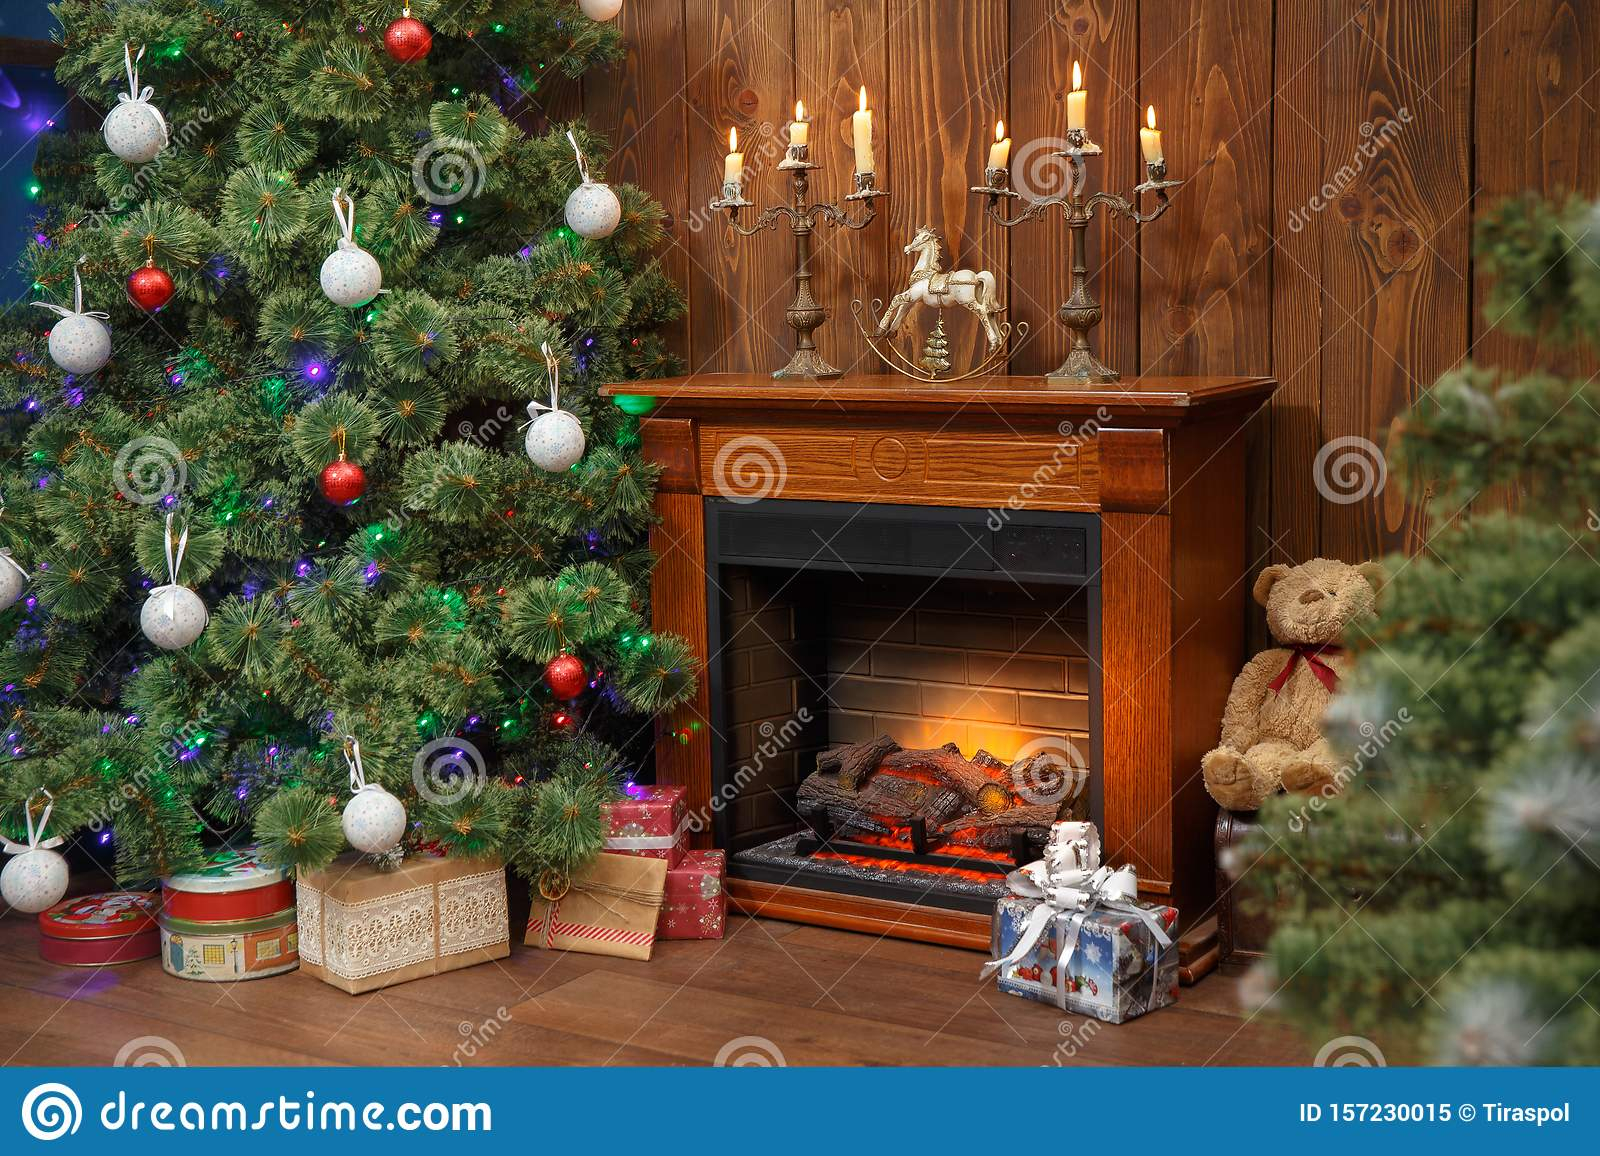 Christmas Interior With Toys And Lots Of Candles Wooden Fake Fireplace Christmas Tree Boxes In Studio Stock Image Image Of Decor Firewood 157230015